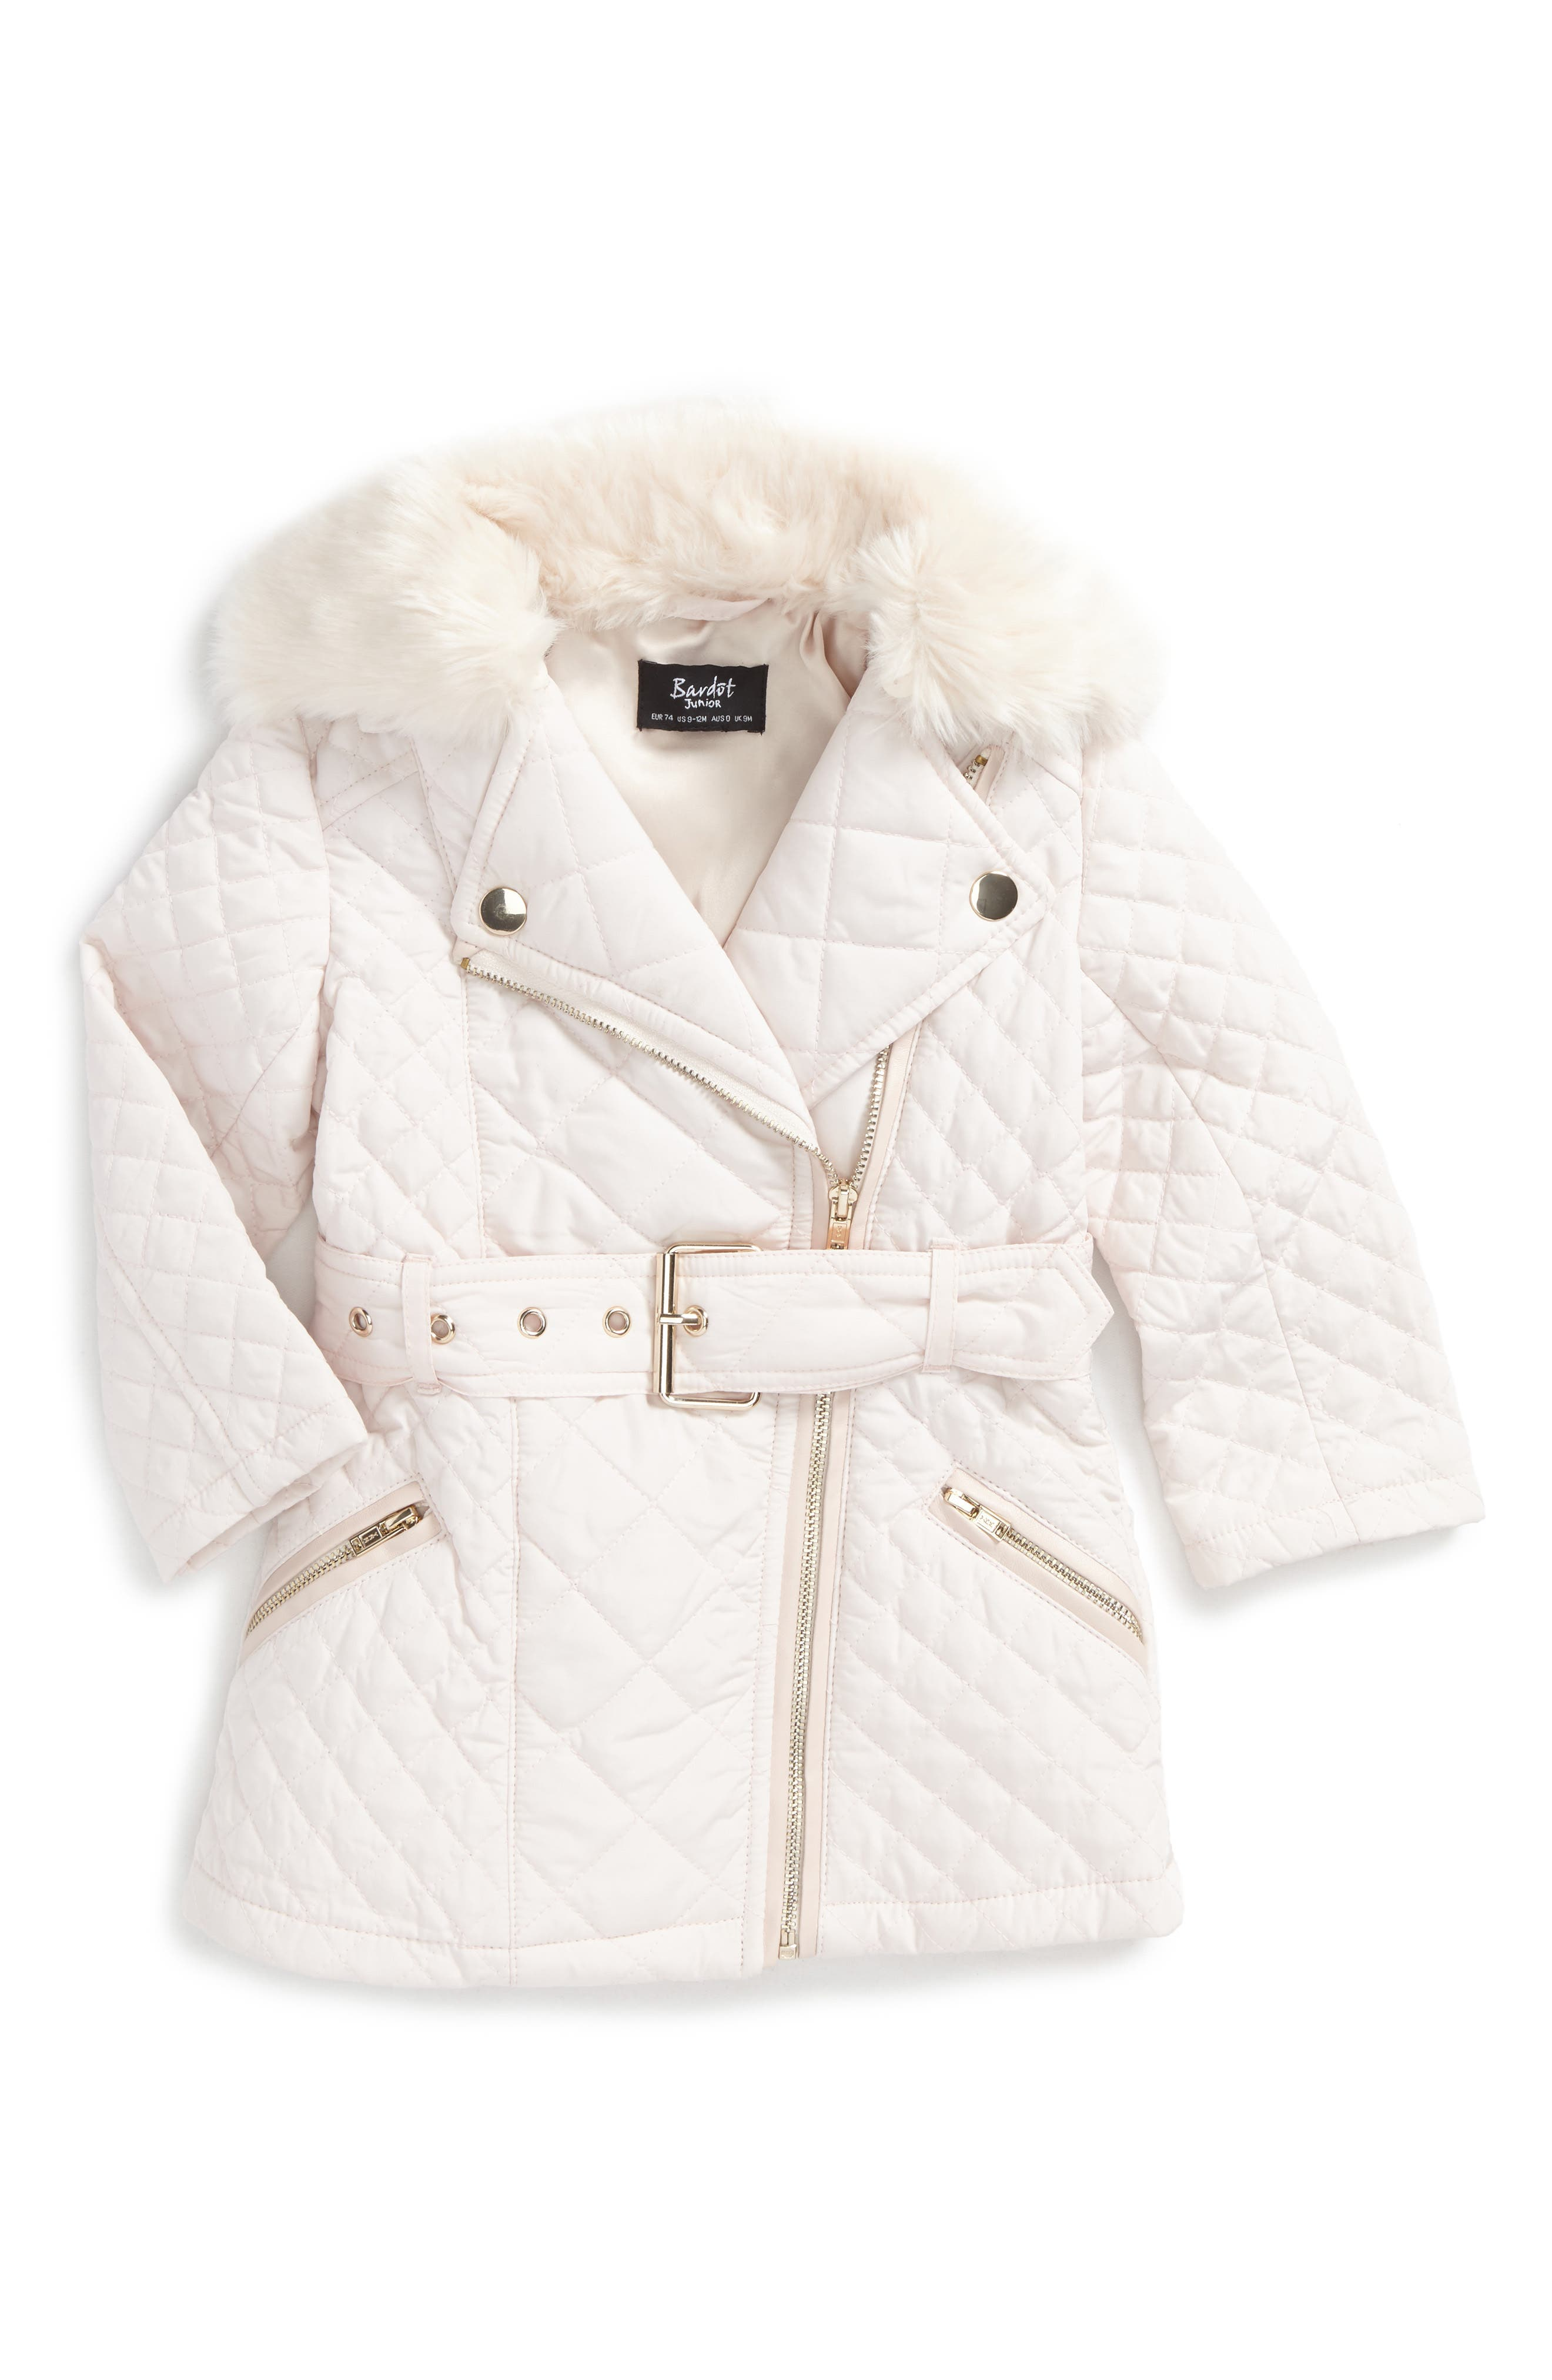 Alternate Image 1 Selected - Bardot Junior Quilted Jacket with Faux Fur Collar (Baby Girls & Toddler Girls)